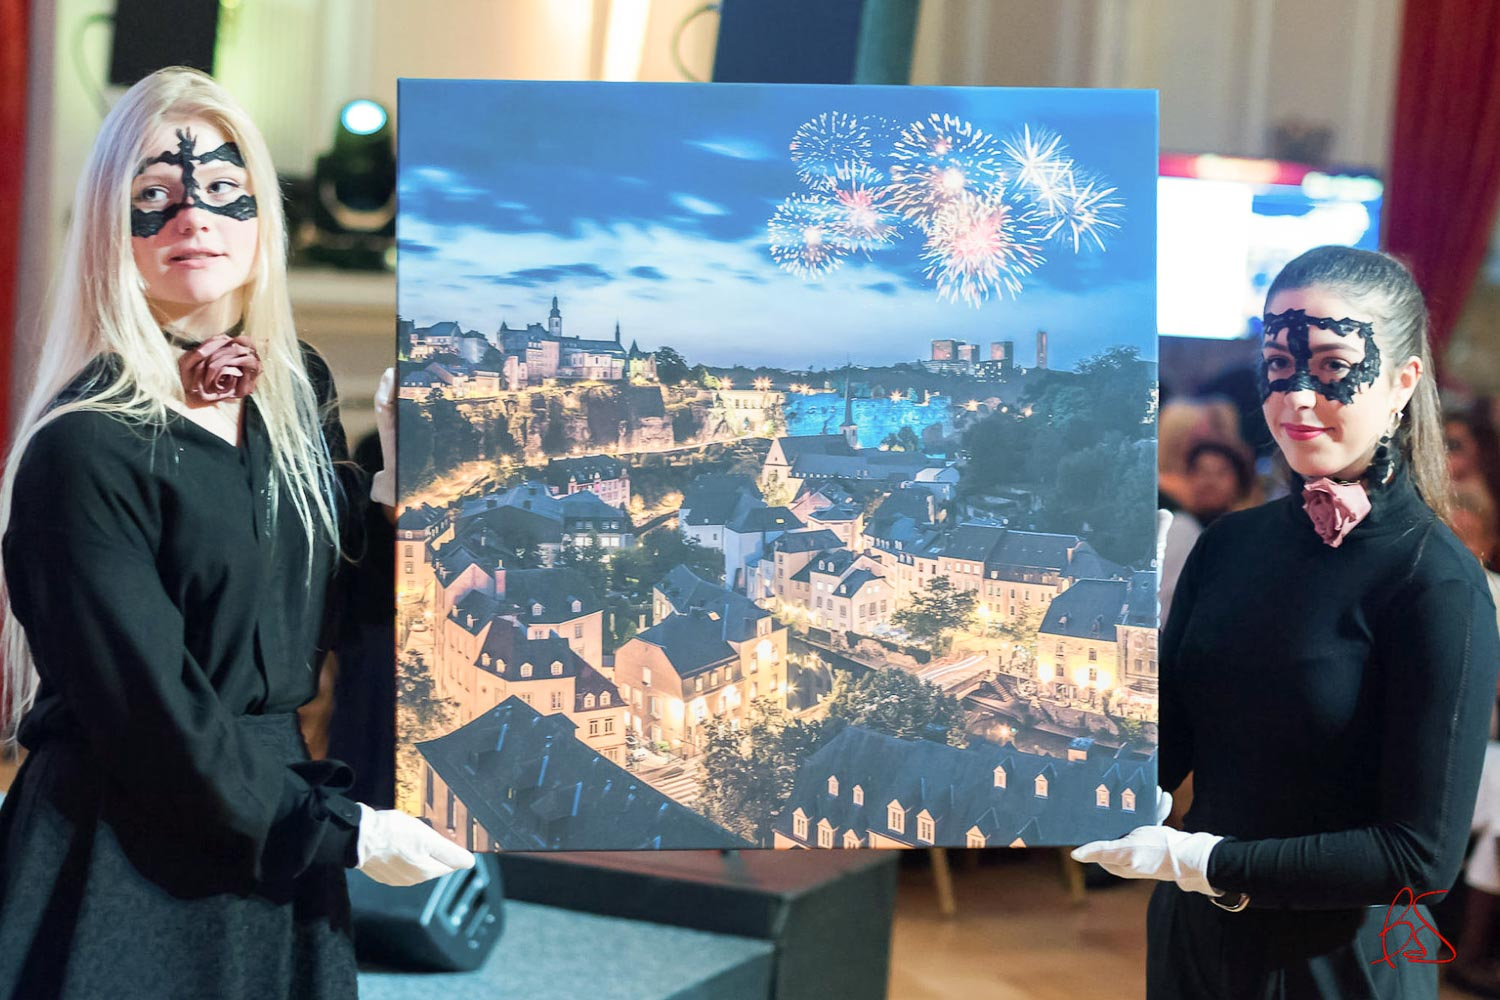 Make-A-Wish Luxembourg - Masquerade Gala and Auction 2017 at Cercle Cité in Luxembourg City - Live Auction - Rain and Fire fine art print by Christophe Van Biesen